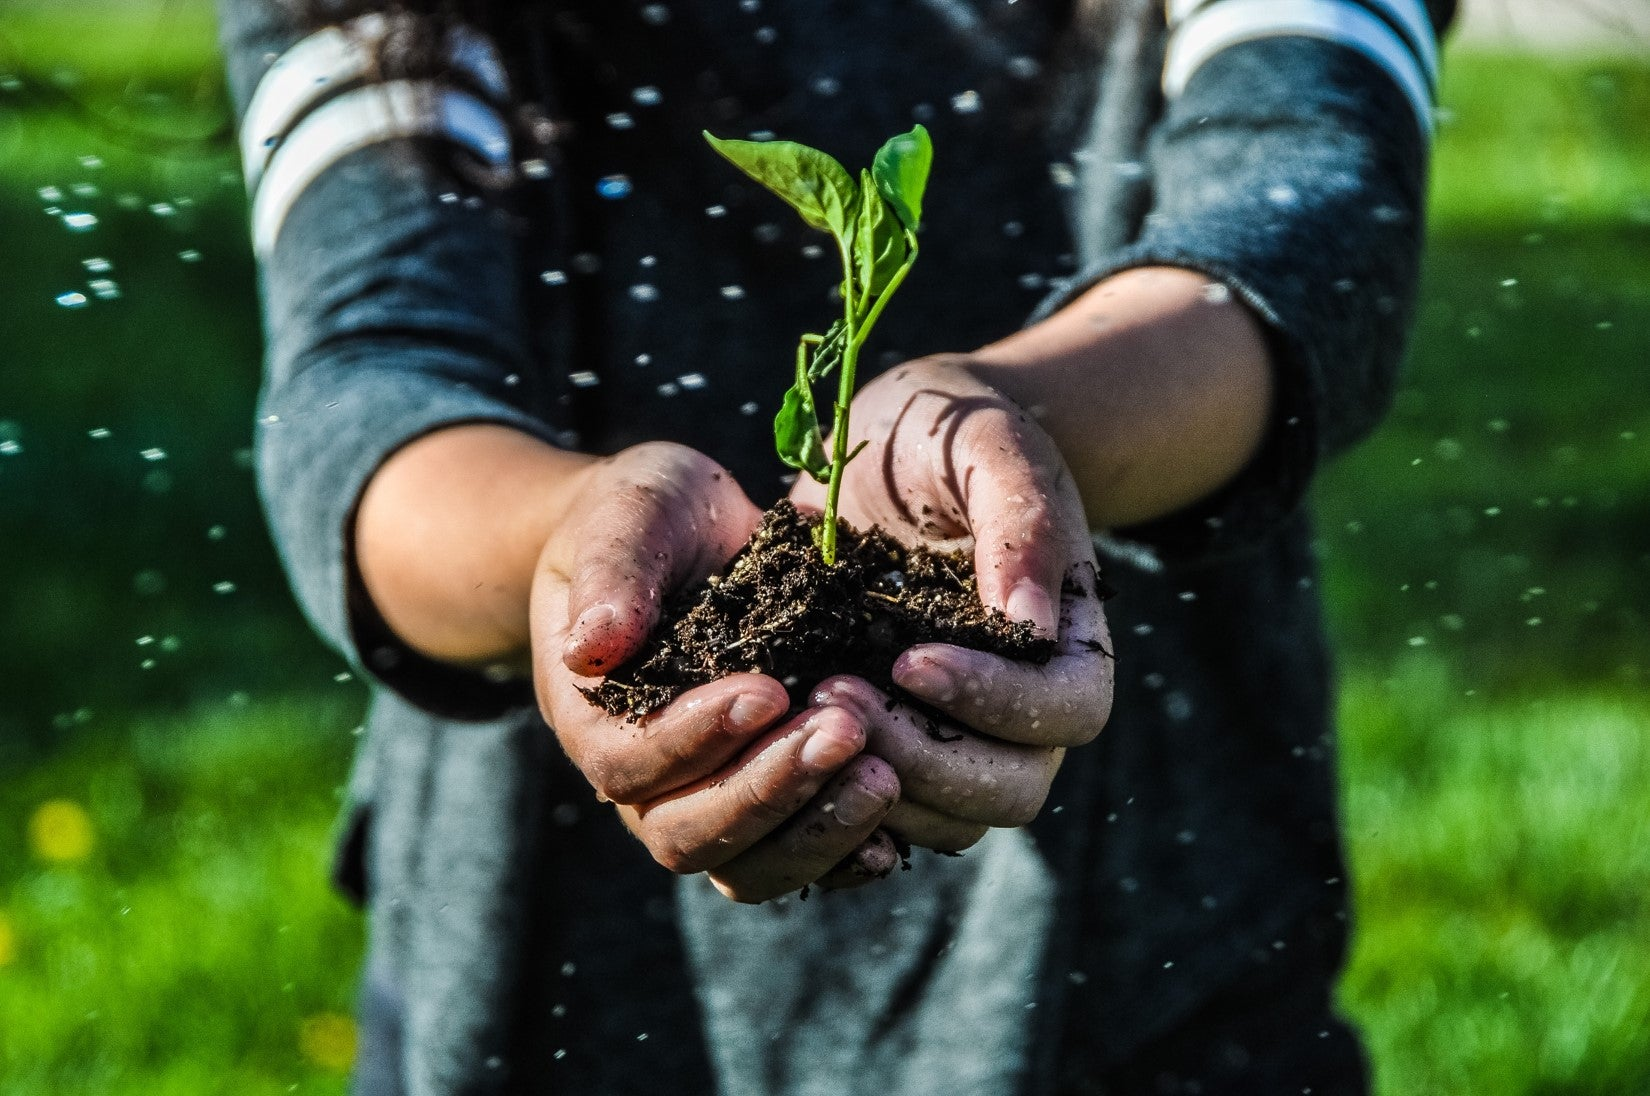 Hands held together in the foreground, holding soil and a sprouted plant